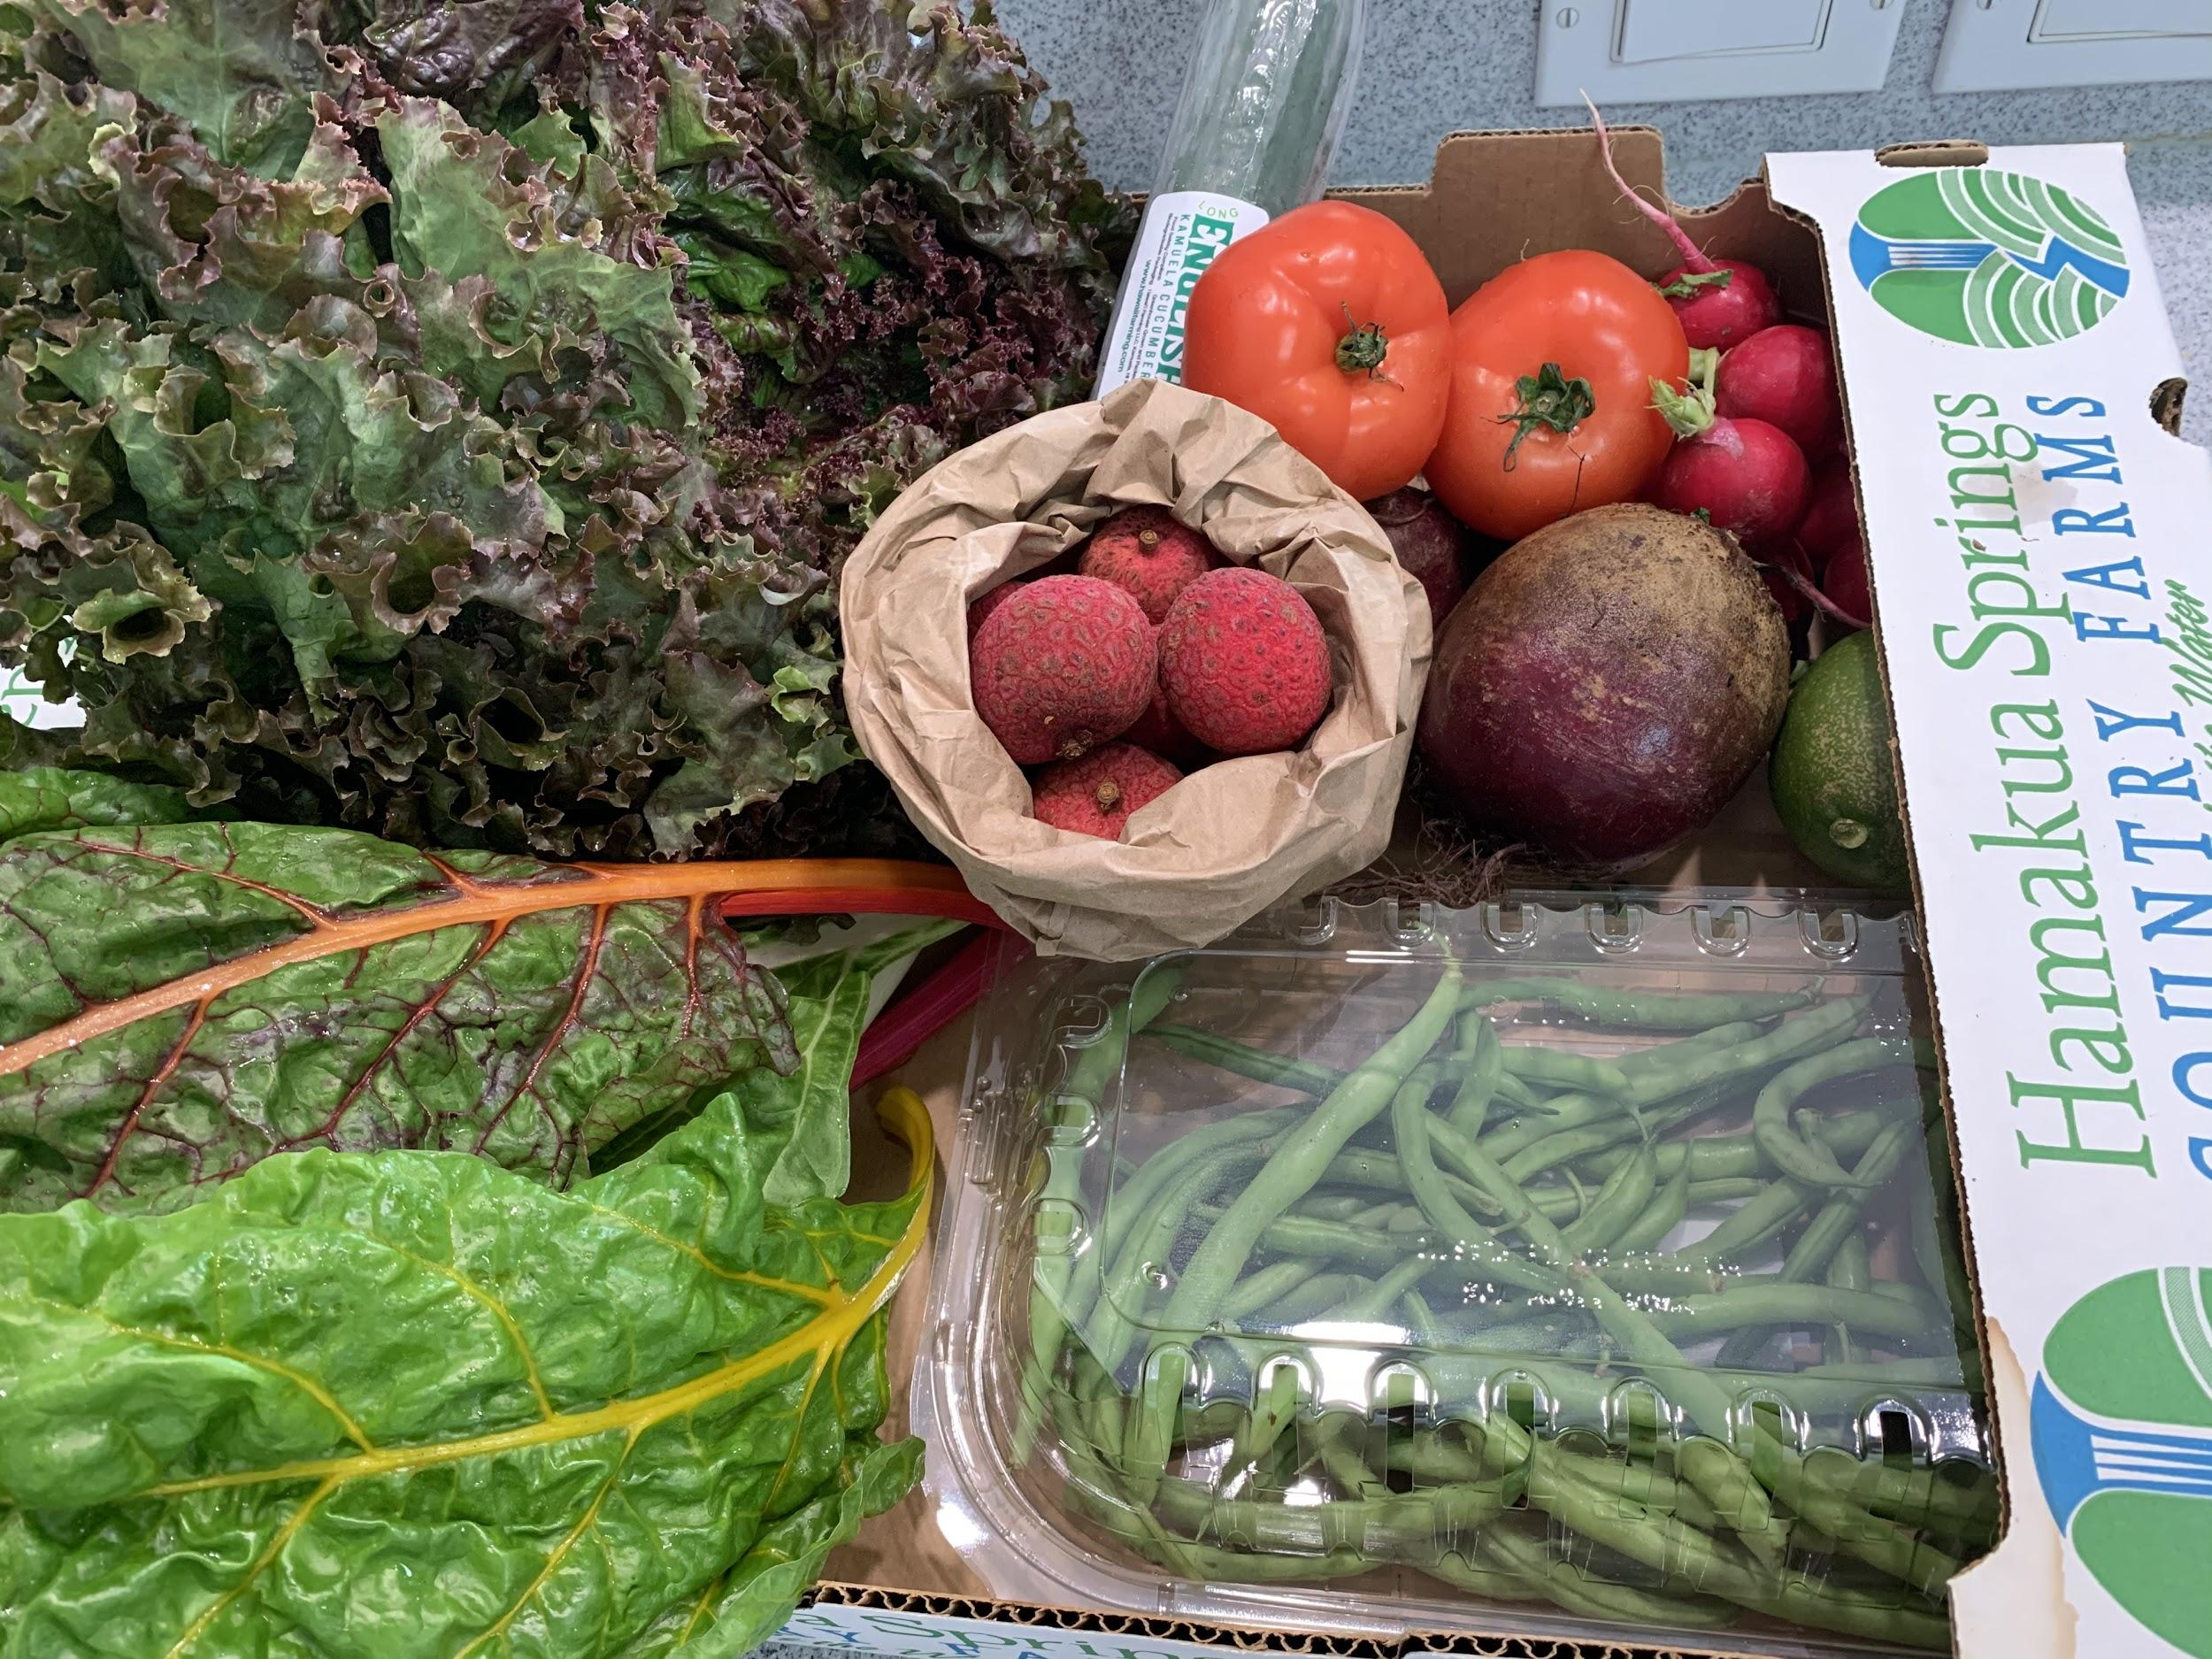 CSA Produce Box full of lychee fruit, lettuce, tomatoes and more!